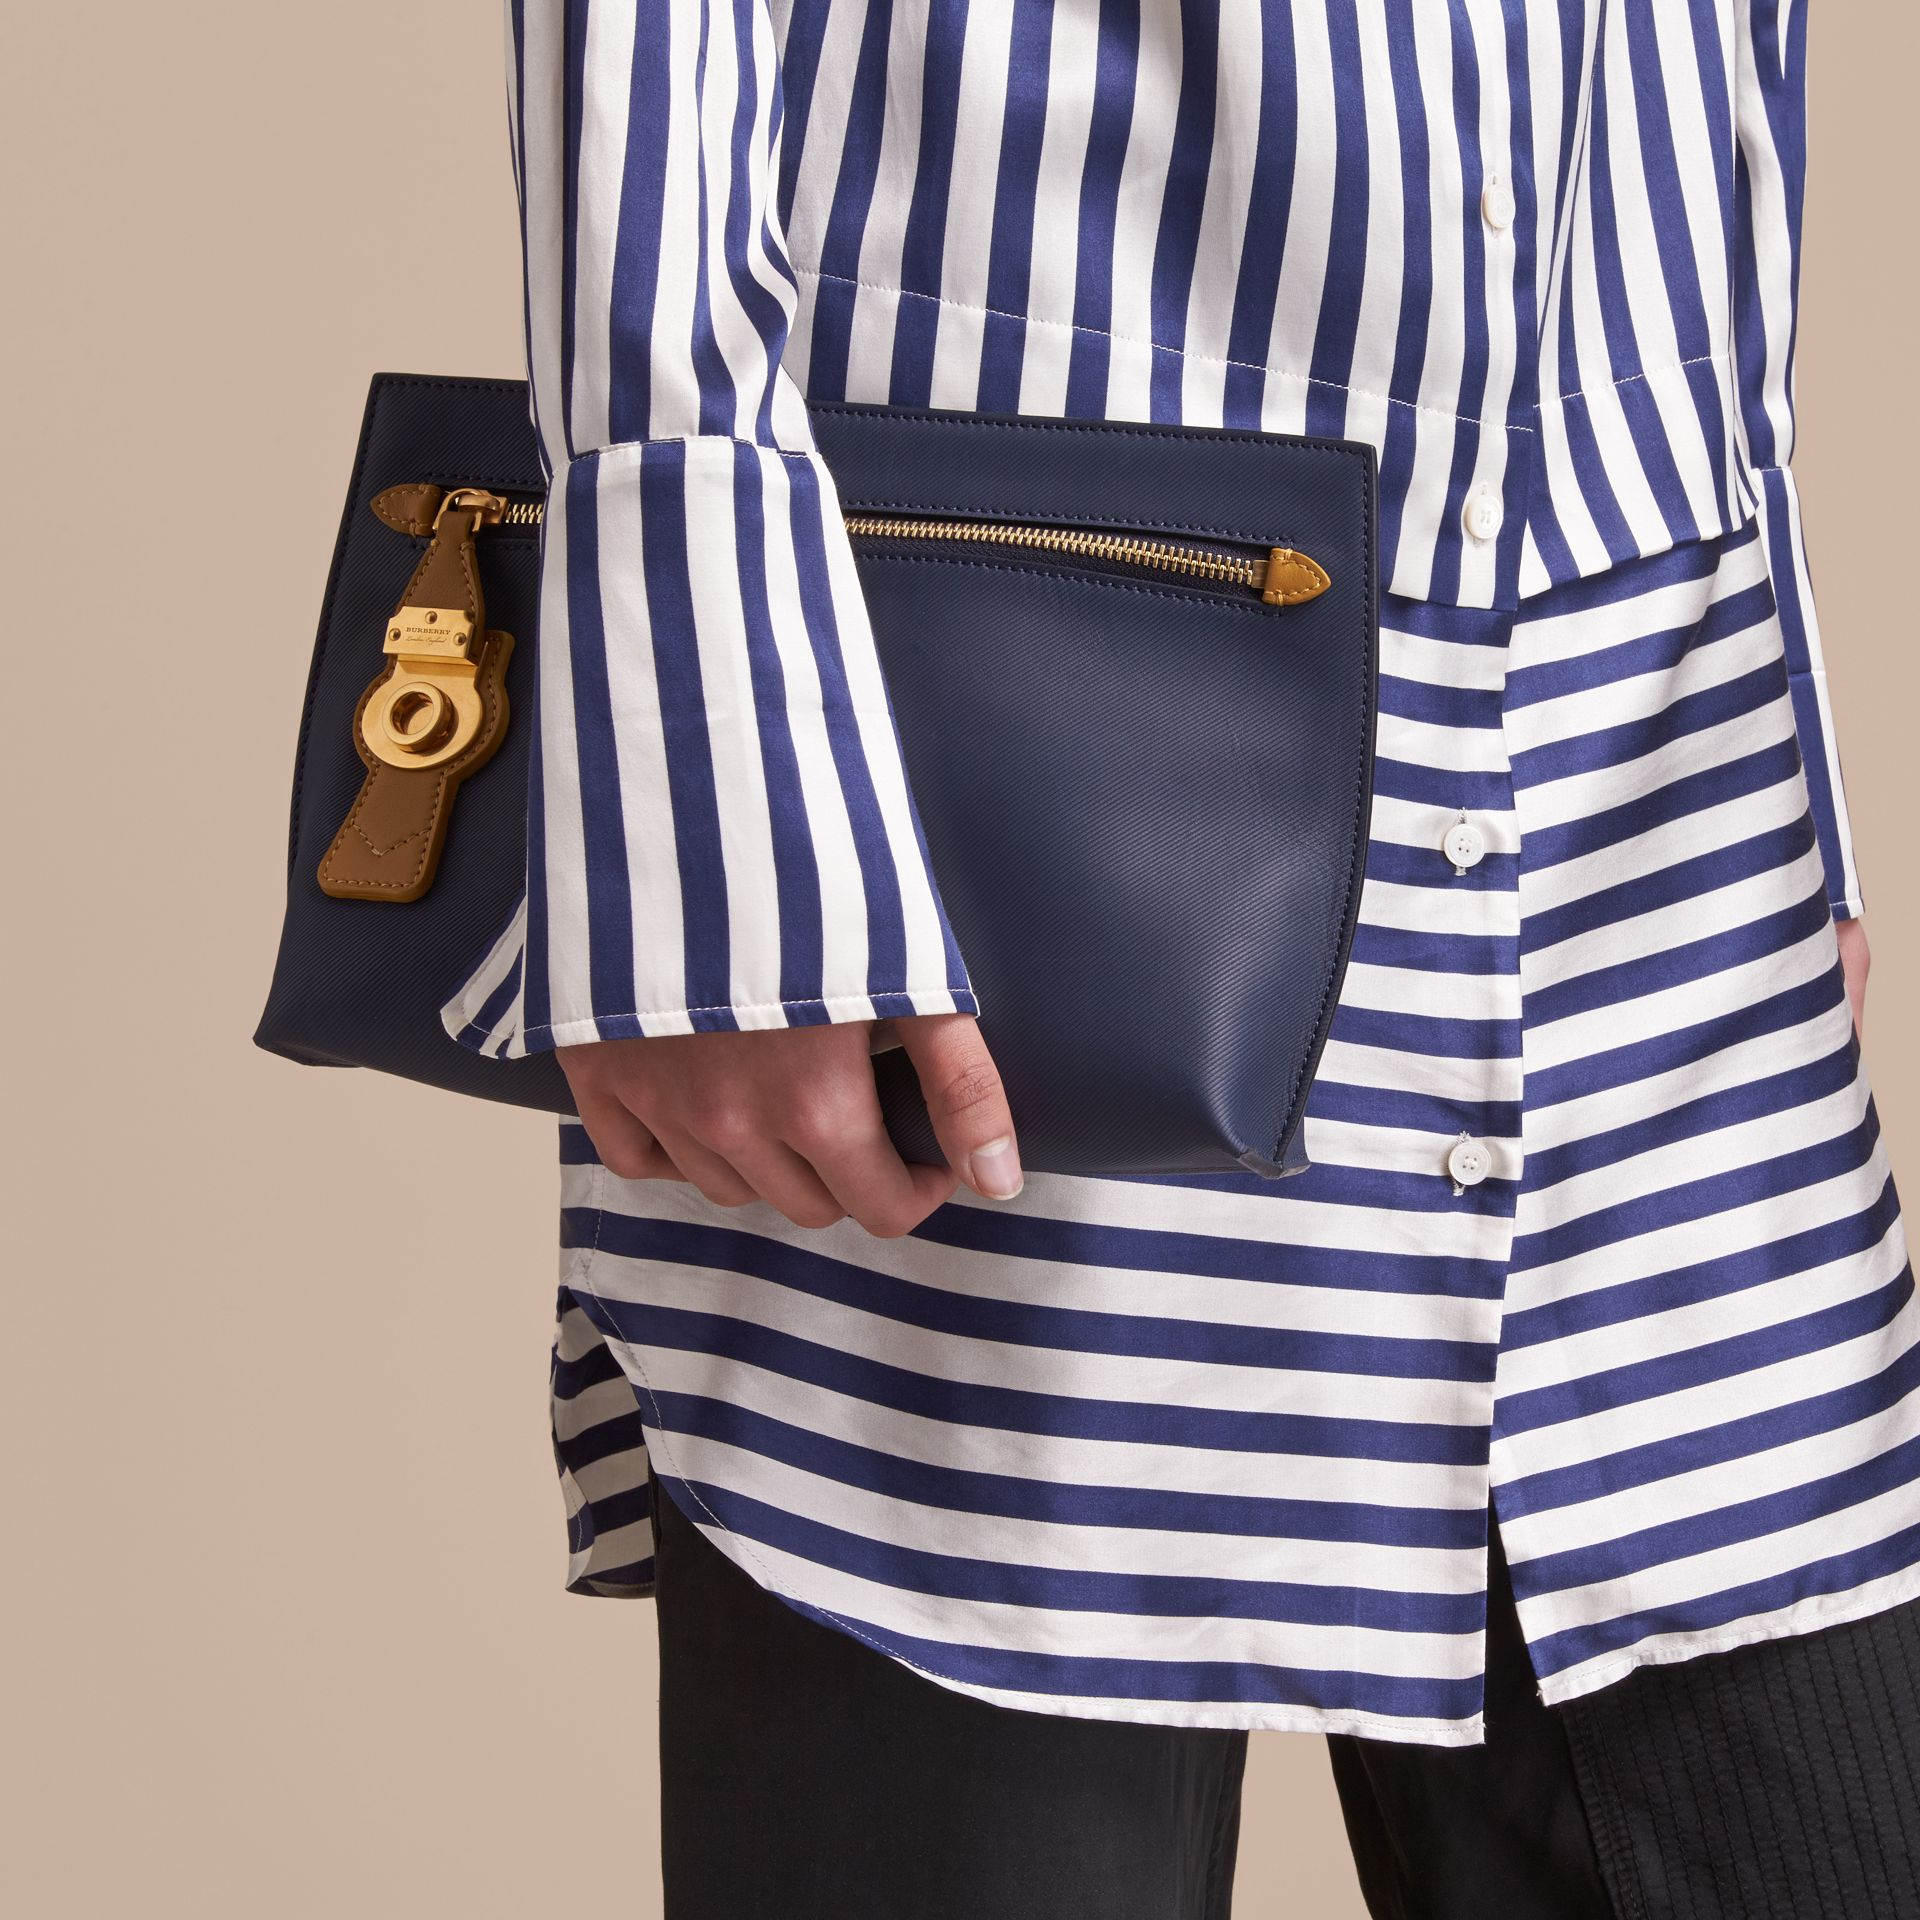 Two-tone Trench Leather Wristlet Pouch in Ink Blue/ochre Yellow - Women | Burberry - gallery image 2